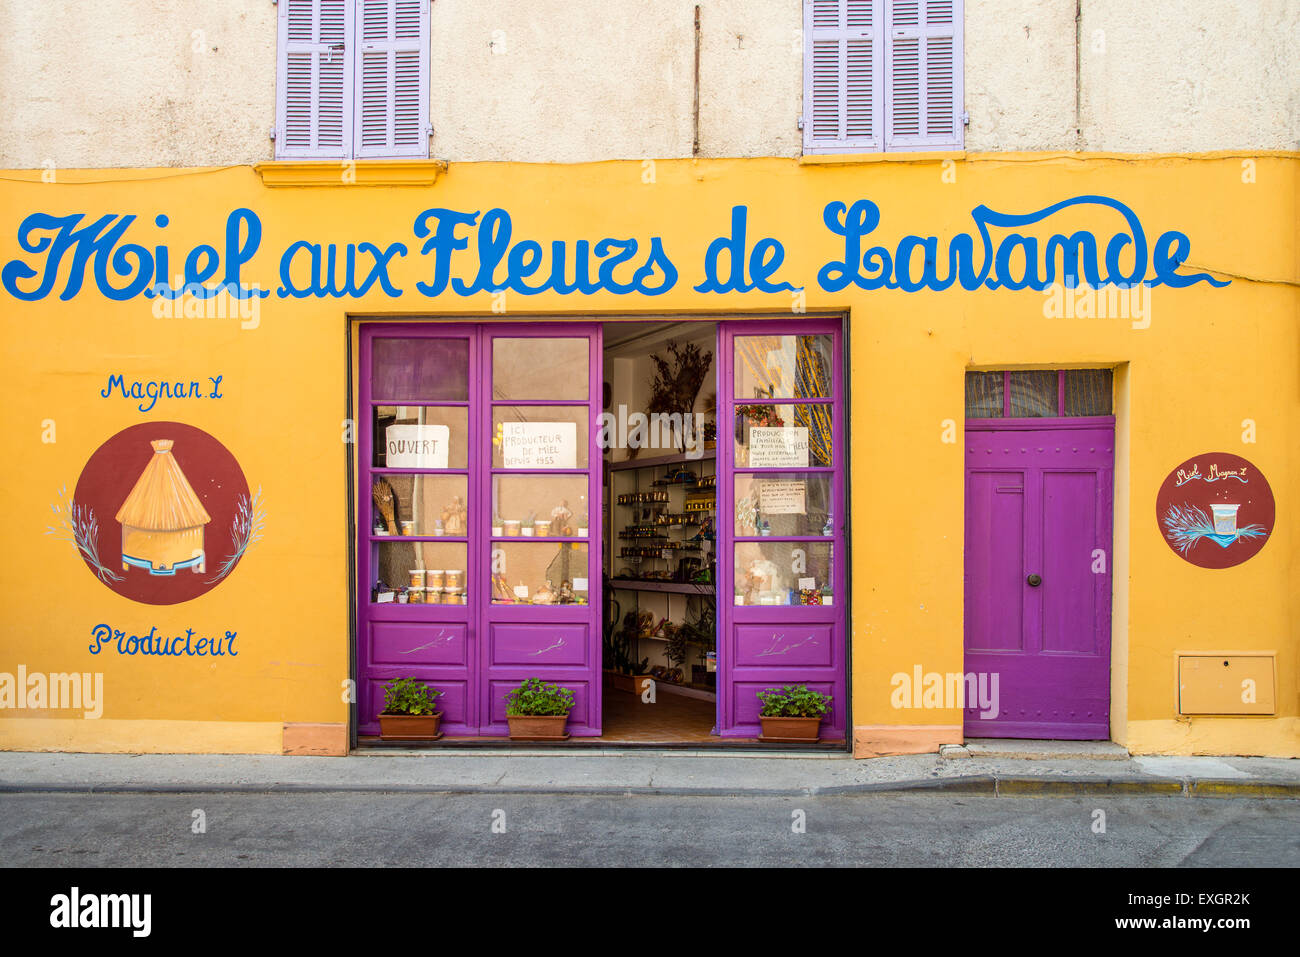 Shop selling local typical specialities in Valensole, Provence, France - Stock Image